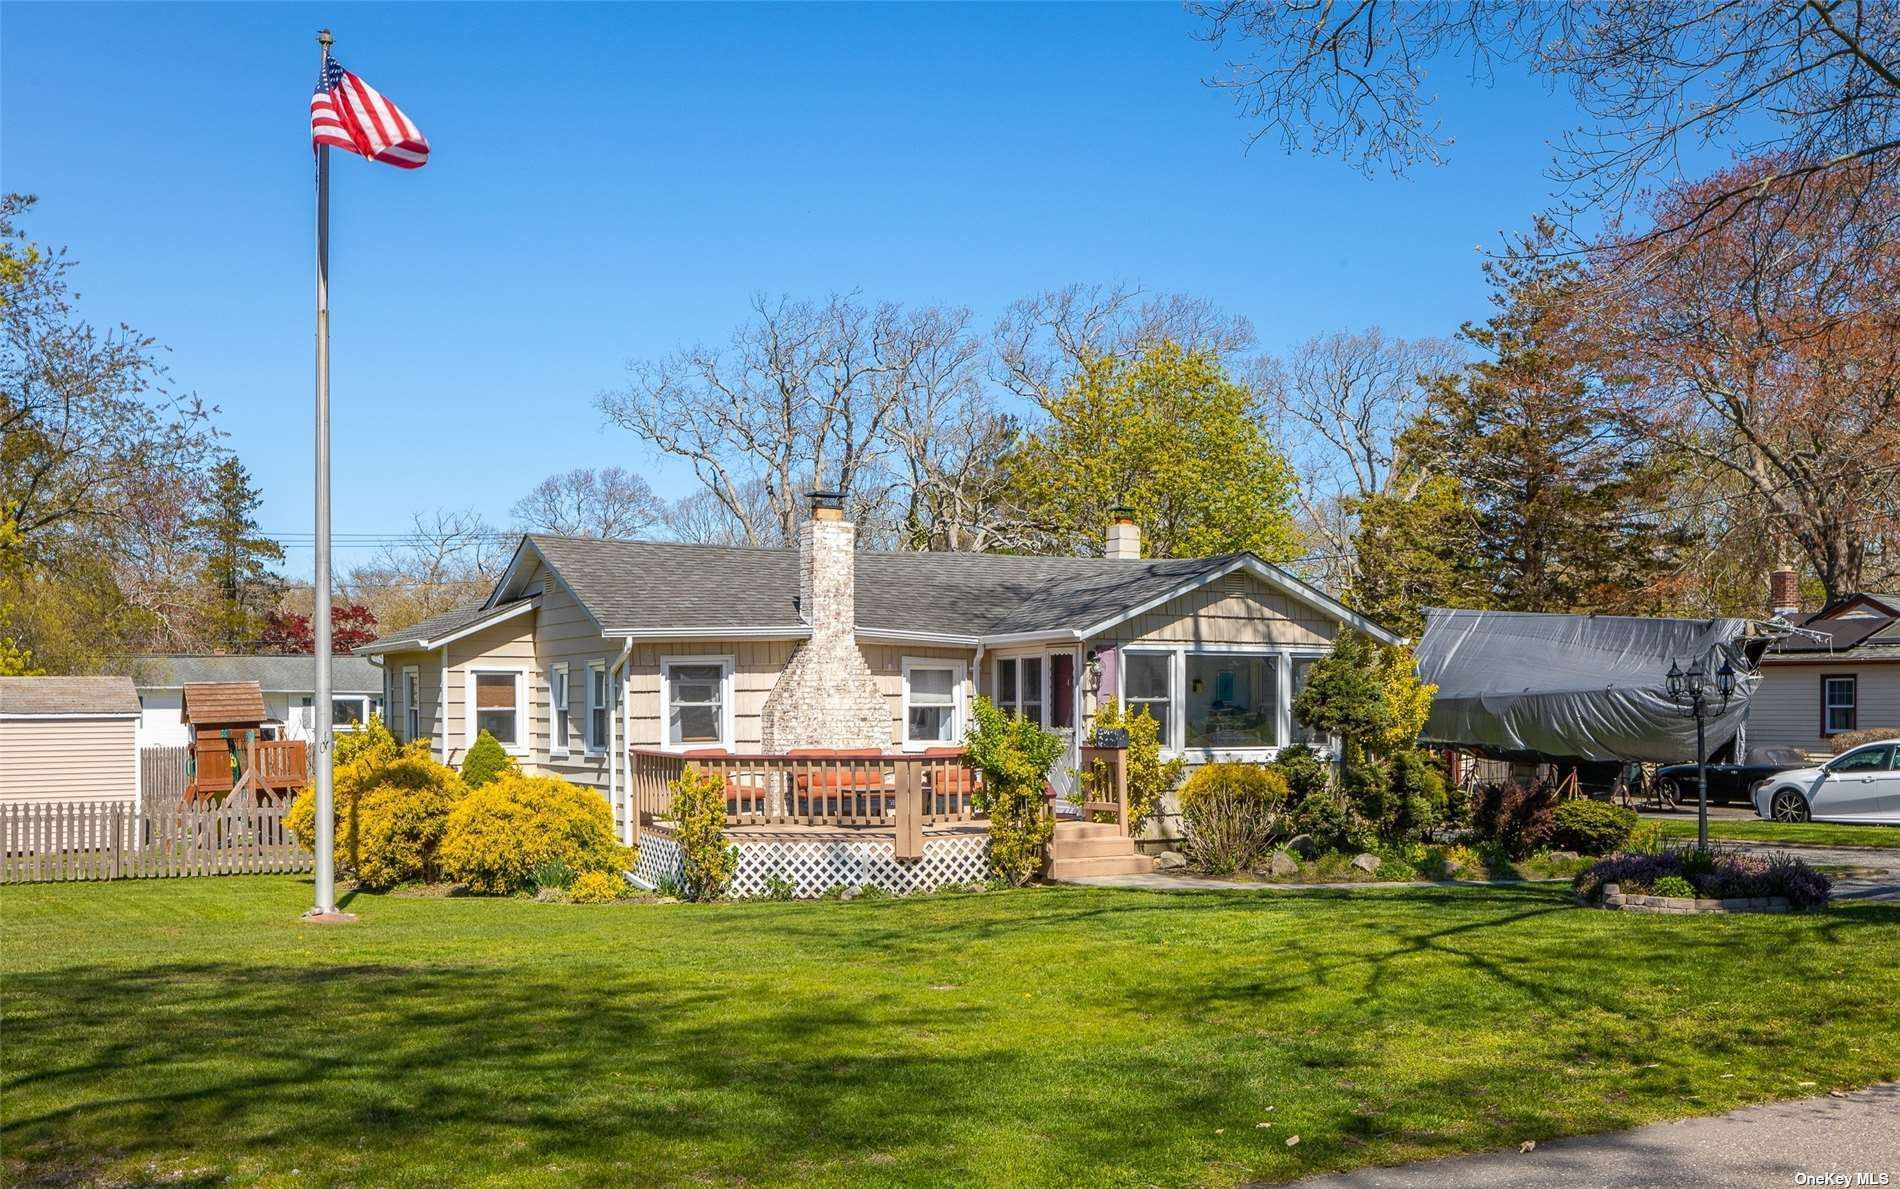 4 S William Street, East Patchogue, NY 11772 - MLS#: 3308984